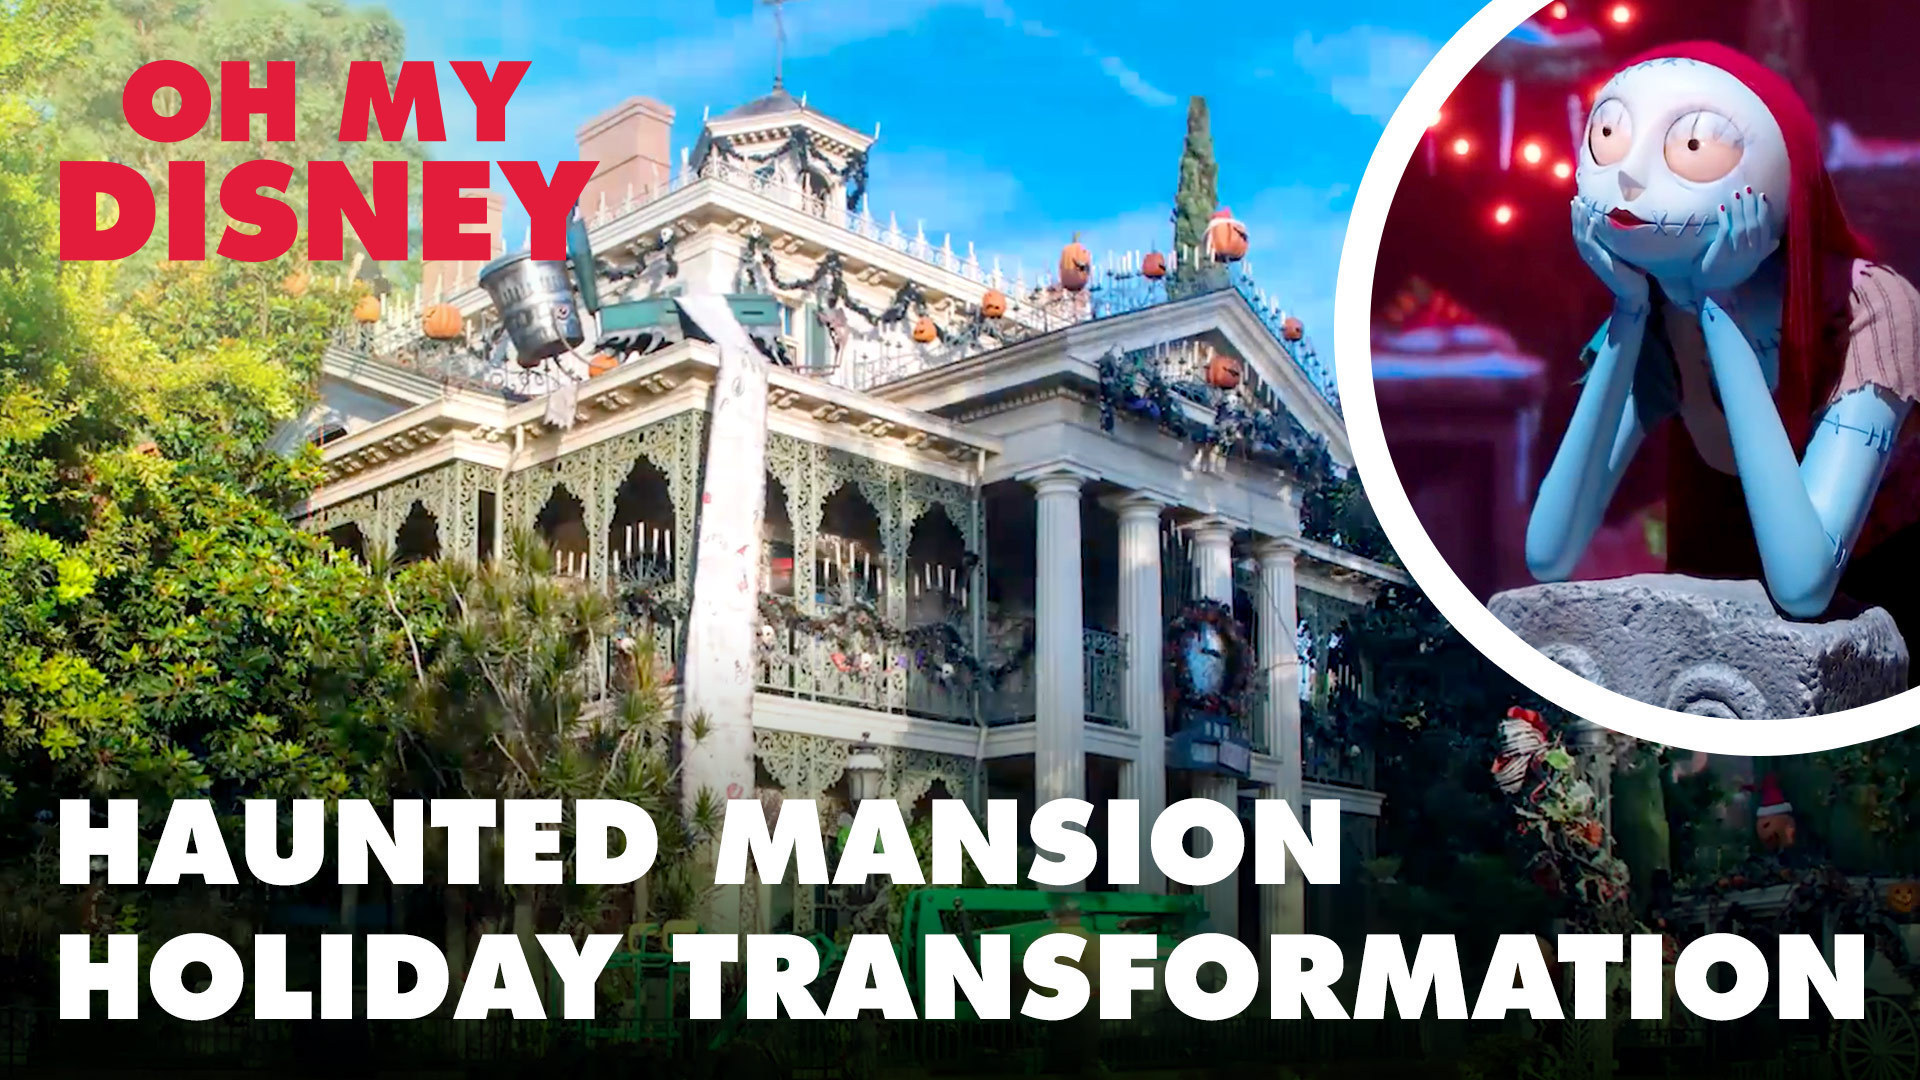 Haunted Mansion Holiday Transformation at Disneyland Resort | Oh My Disney